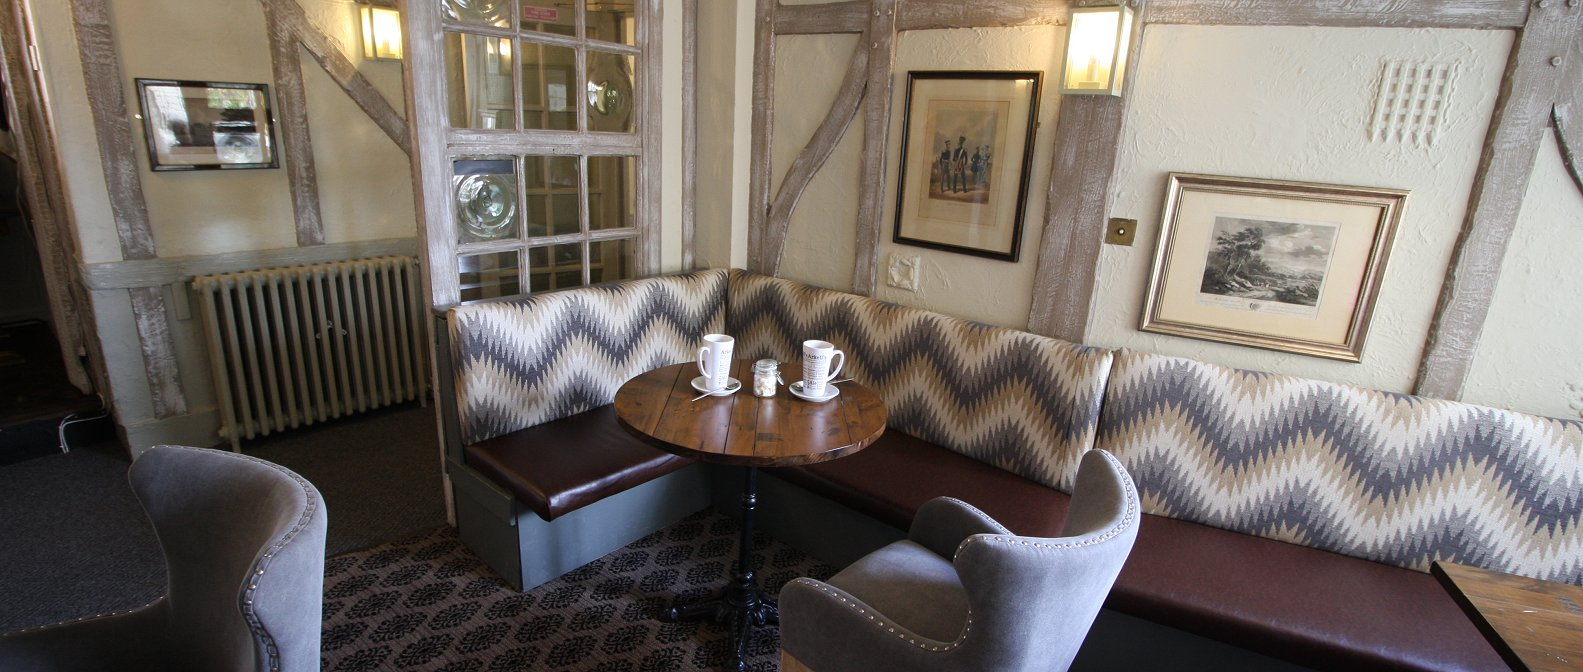 Eat & drink at The White Hart Hotel & Restaurant Whitchurch accommodation/bed-and-breakfast/pub food Newbury